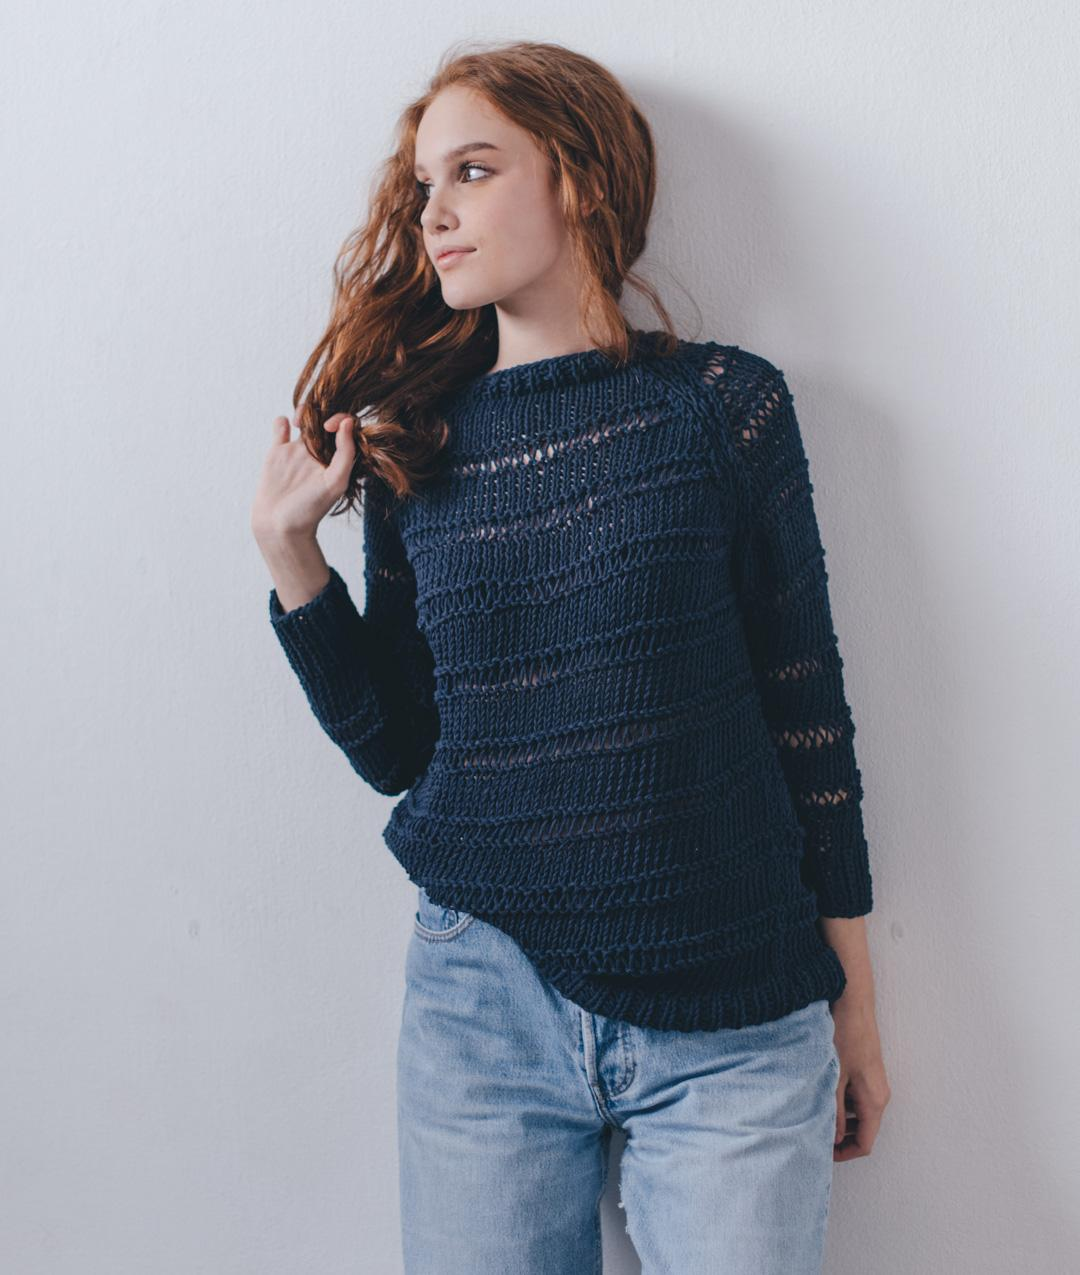 Sweaters and Tops - Cotton - Georgia Sweater - 1